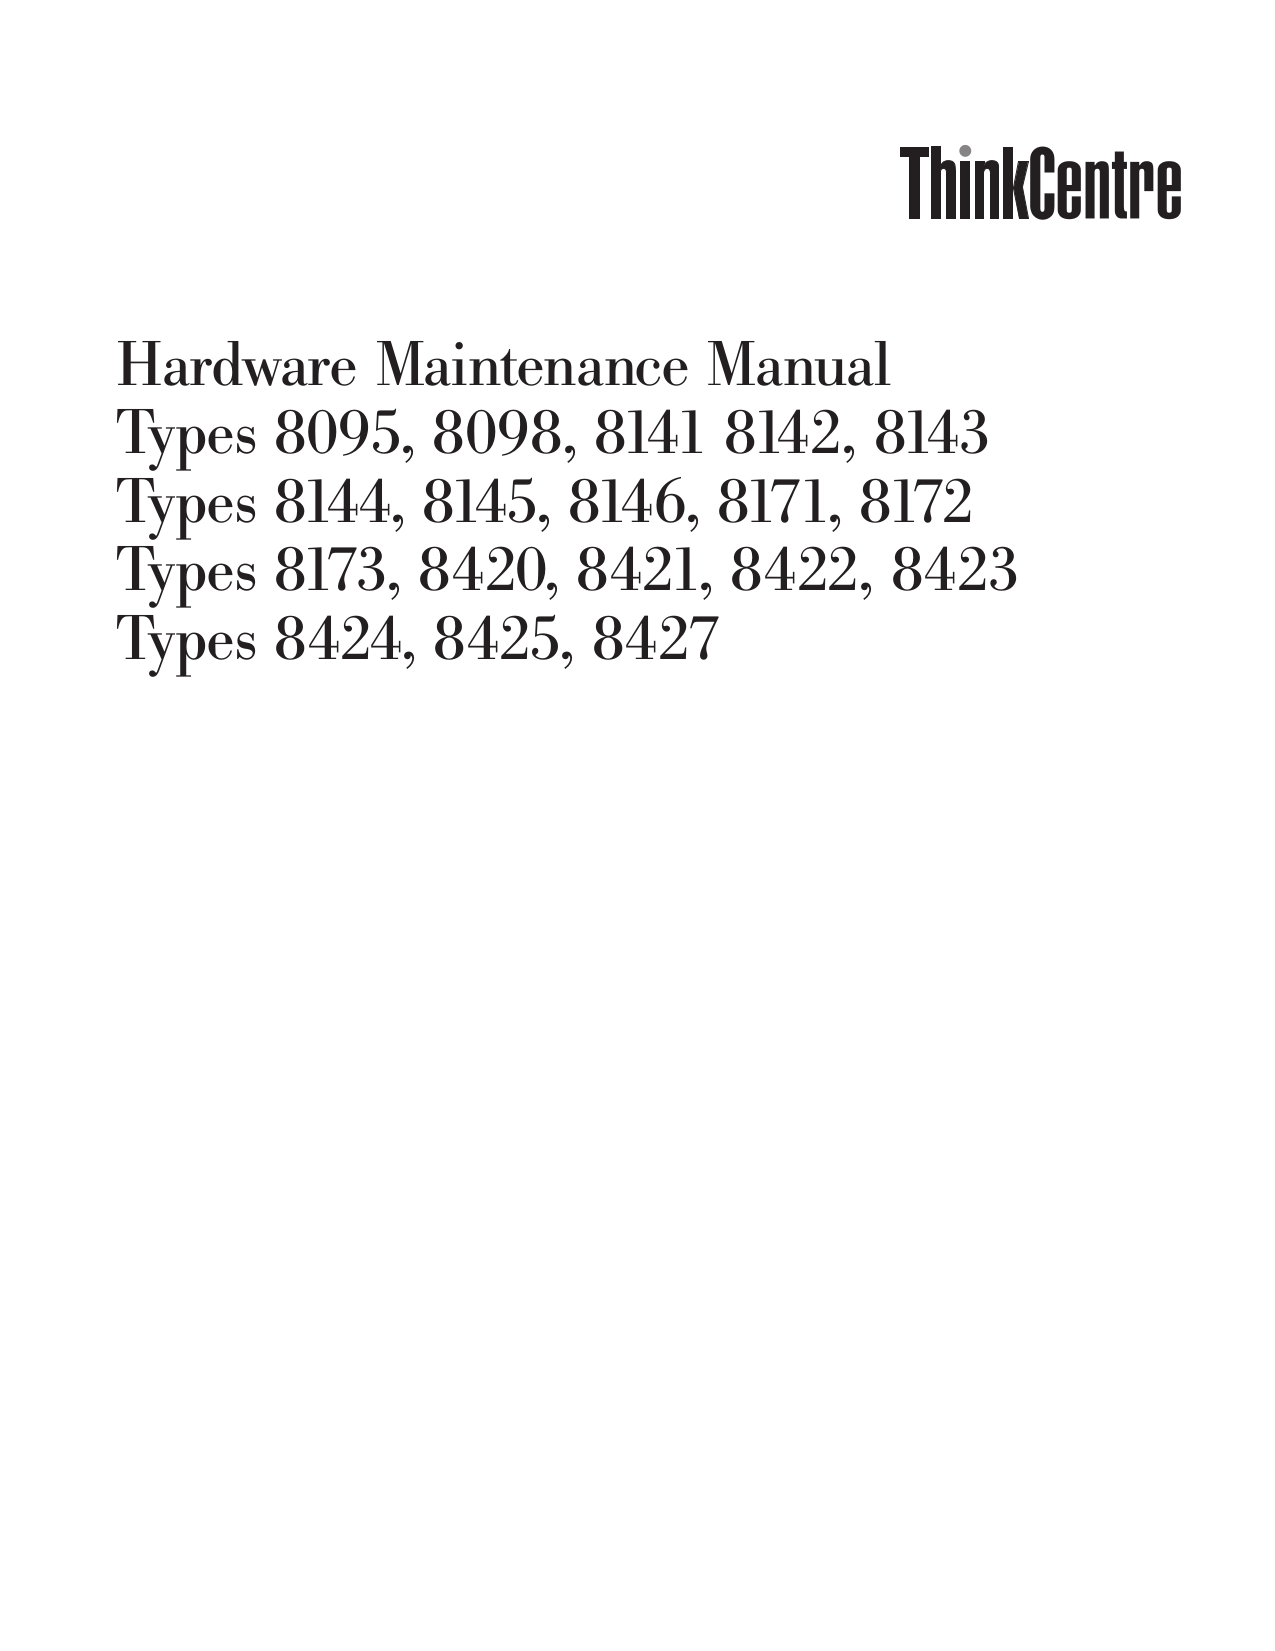 pdf for Lenovo Desktop ThinkCentre M51 8145 manual